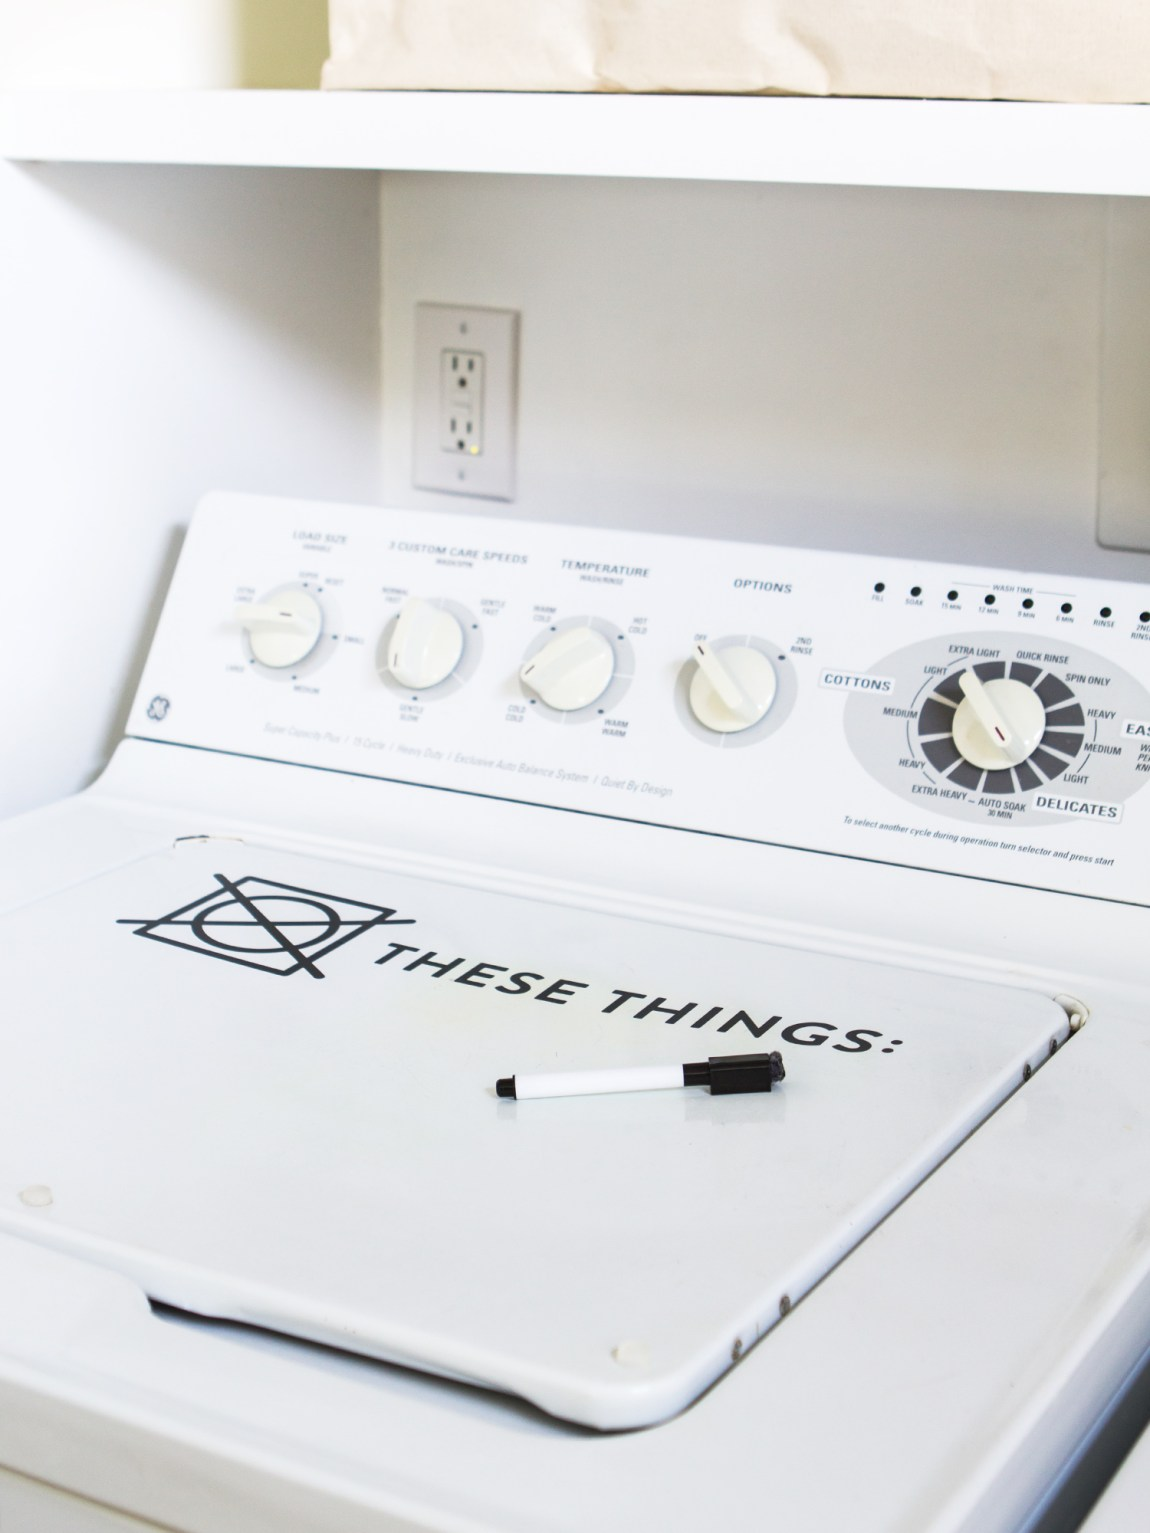 Transform your washing machine into a helpful dry erase board so you never accidentally shrink your favorite dress! Click through for free do not dry decal template.